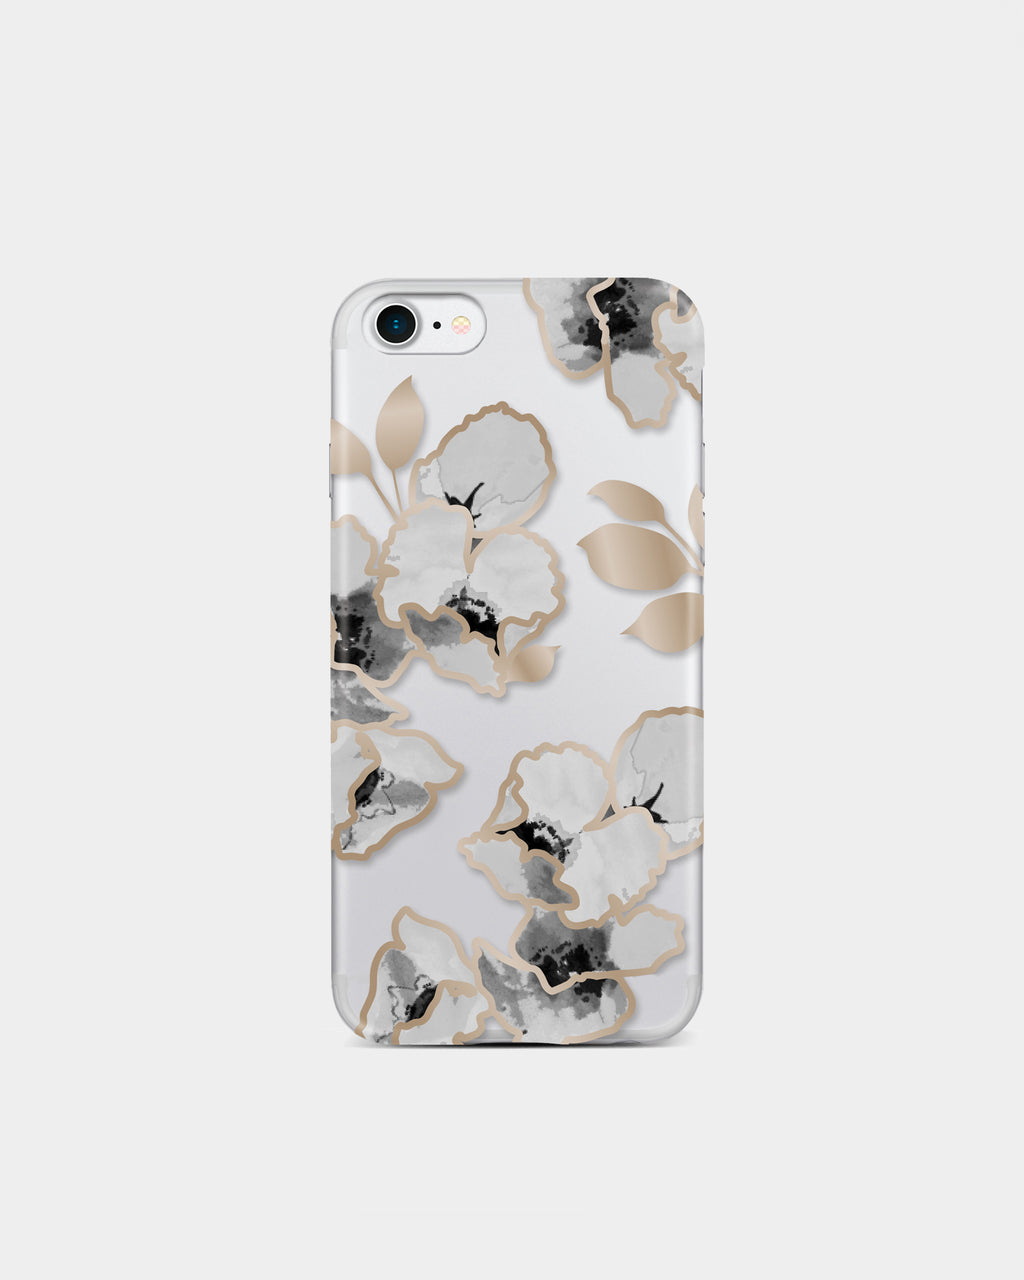 IC7093 - BOTANICAL iPHONE 7 PLUS CASE - accessories - fashion tech - Clear iphone 7 case with black, white and gold floral print.